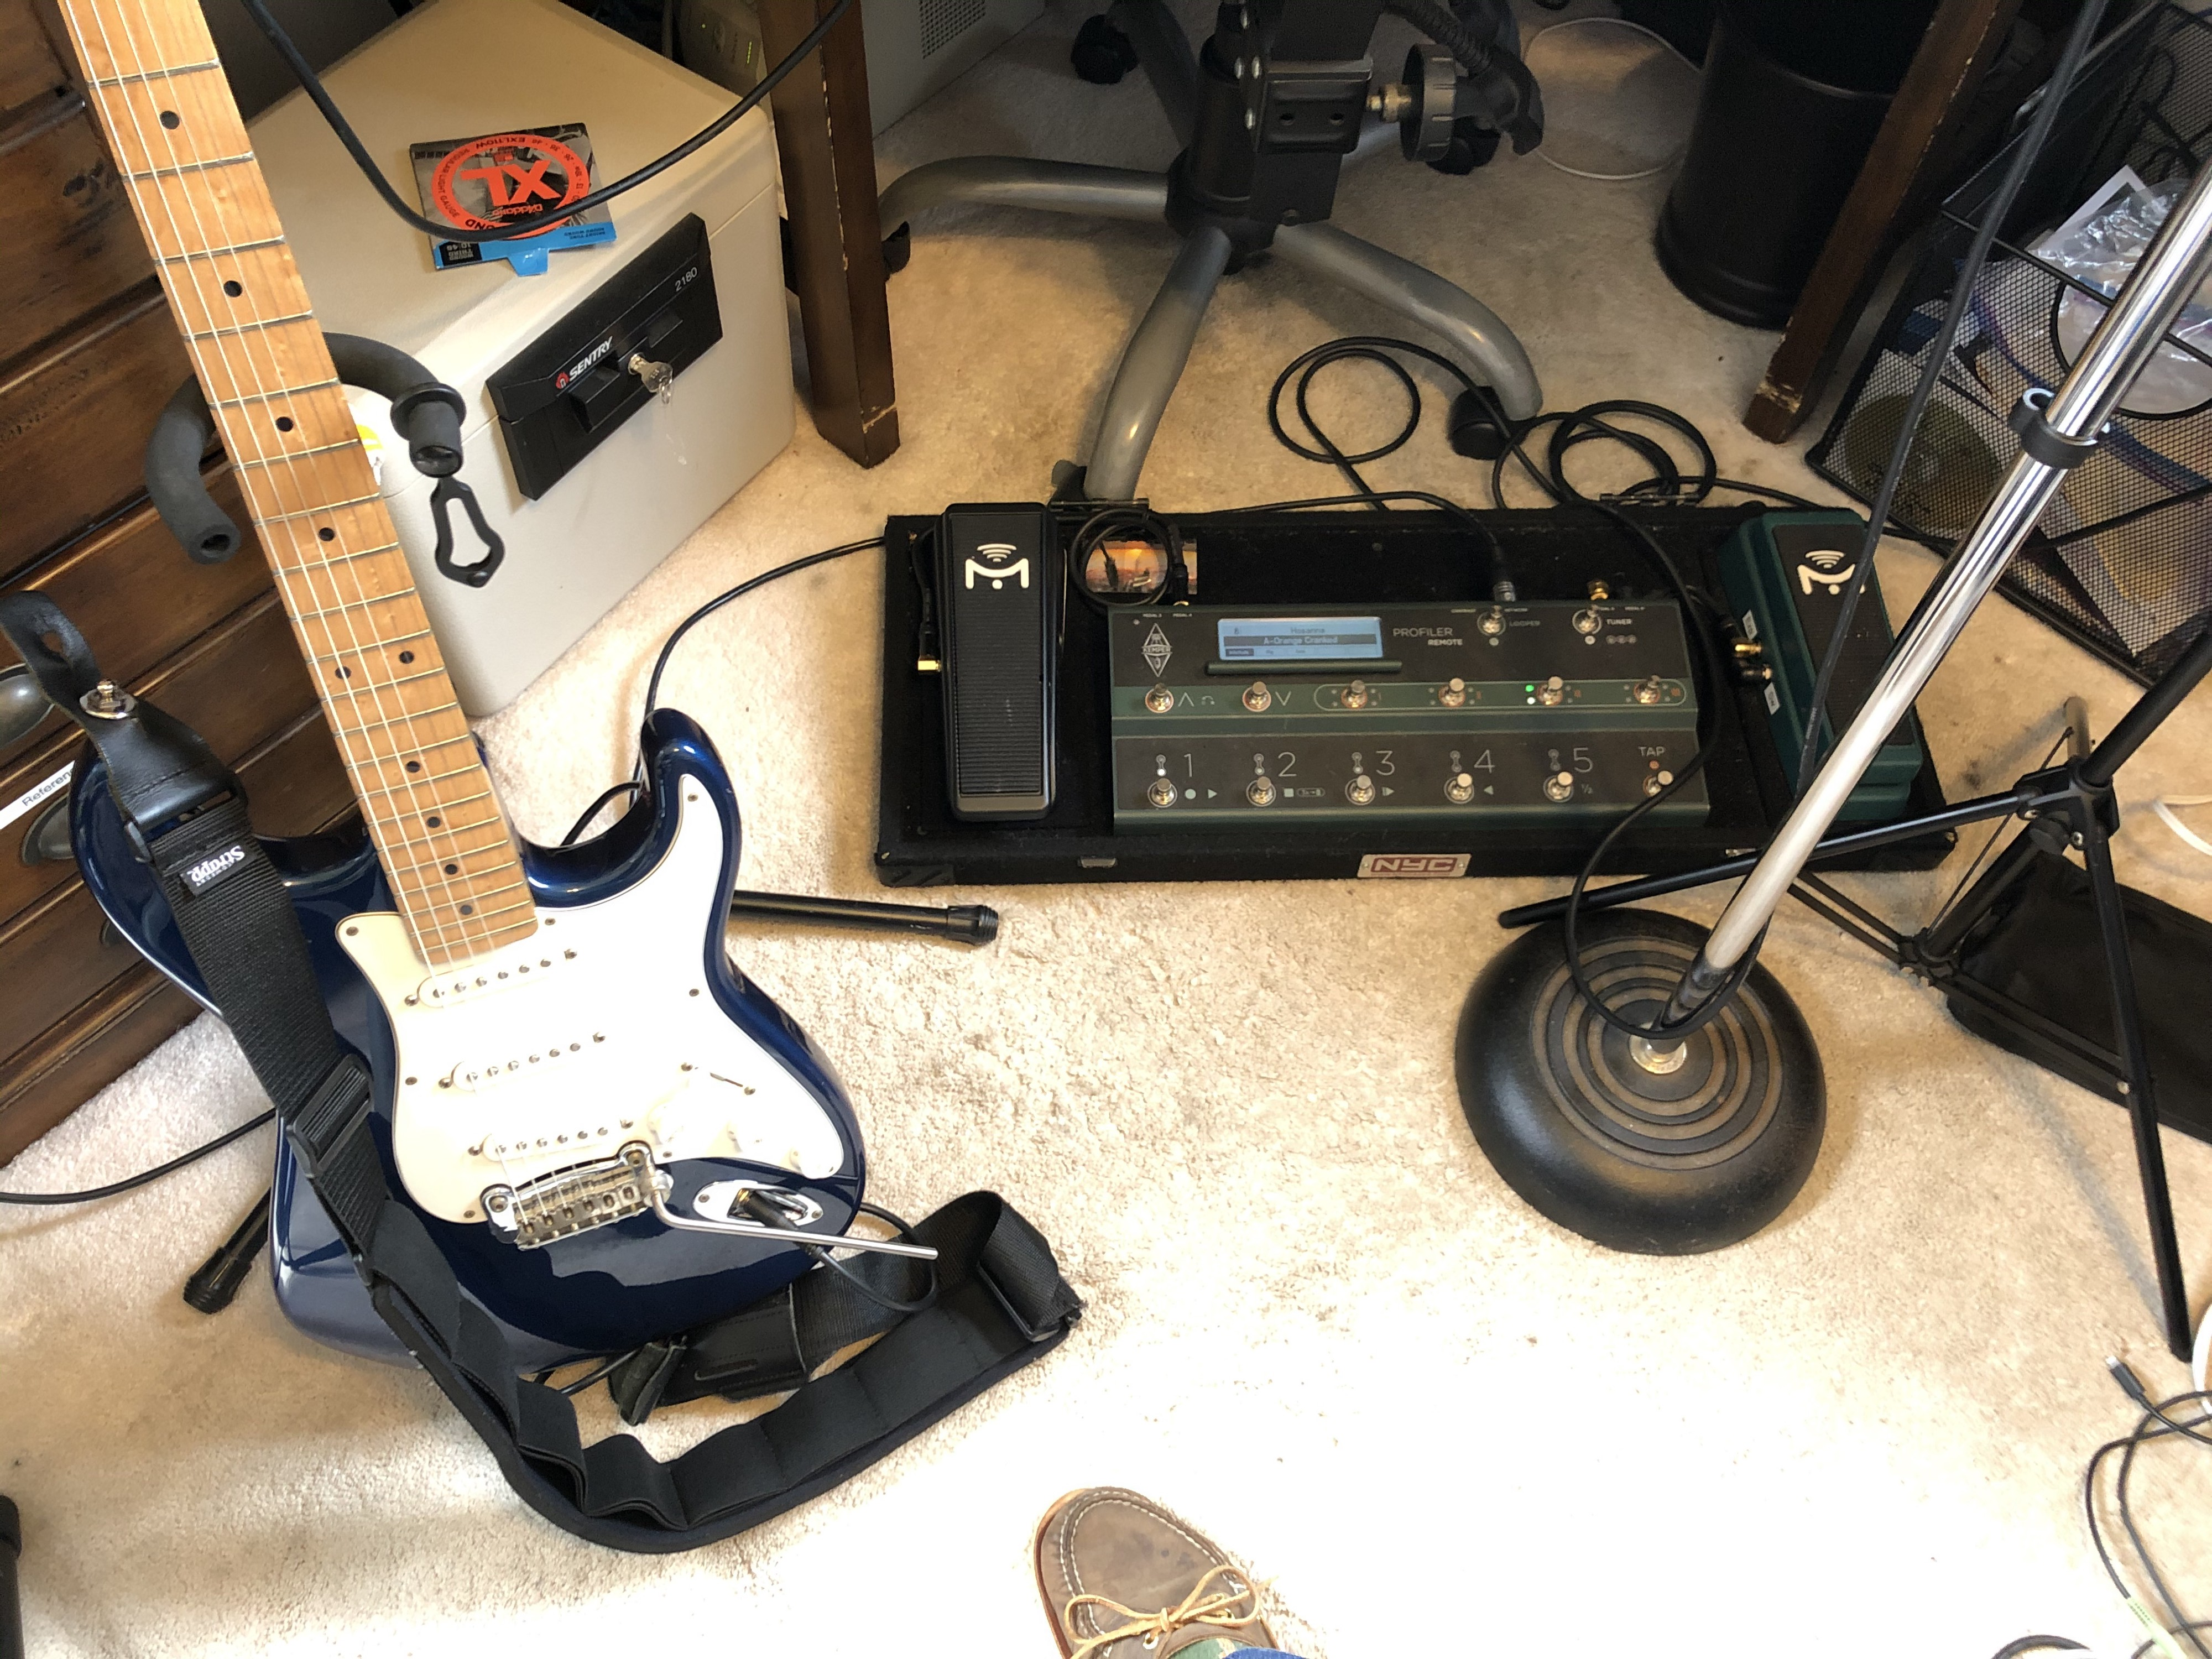 Electric guitar and guitar effects floor board.